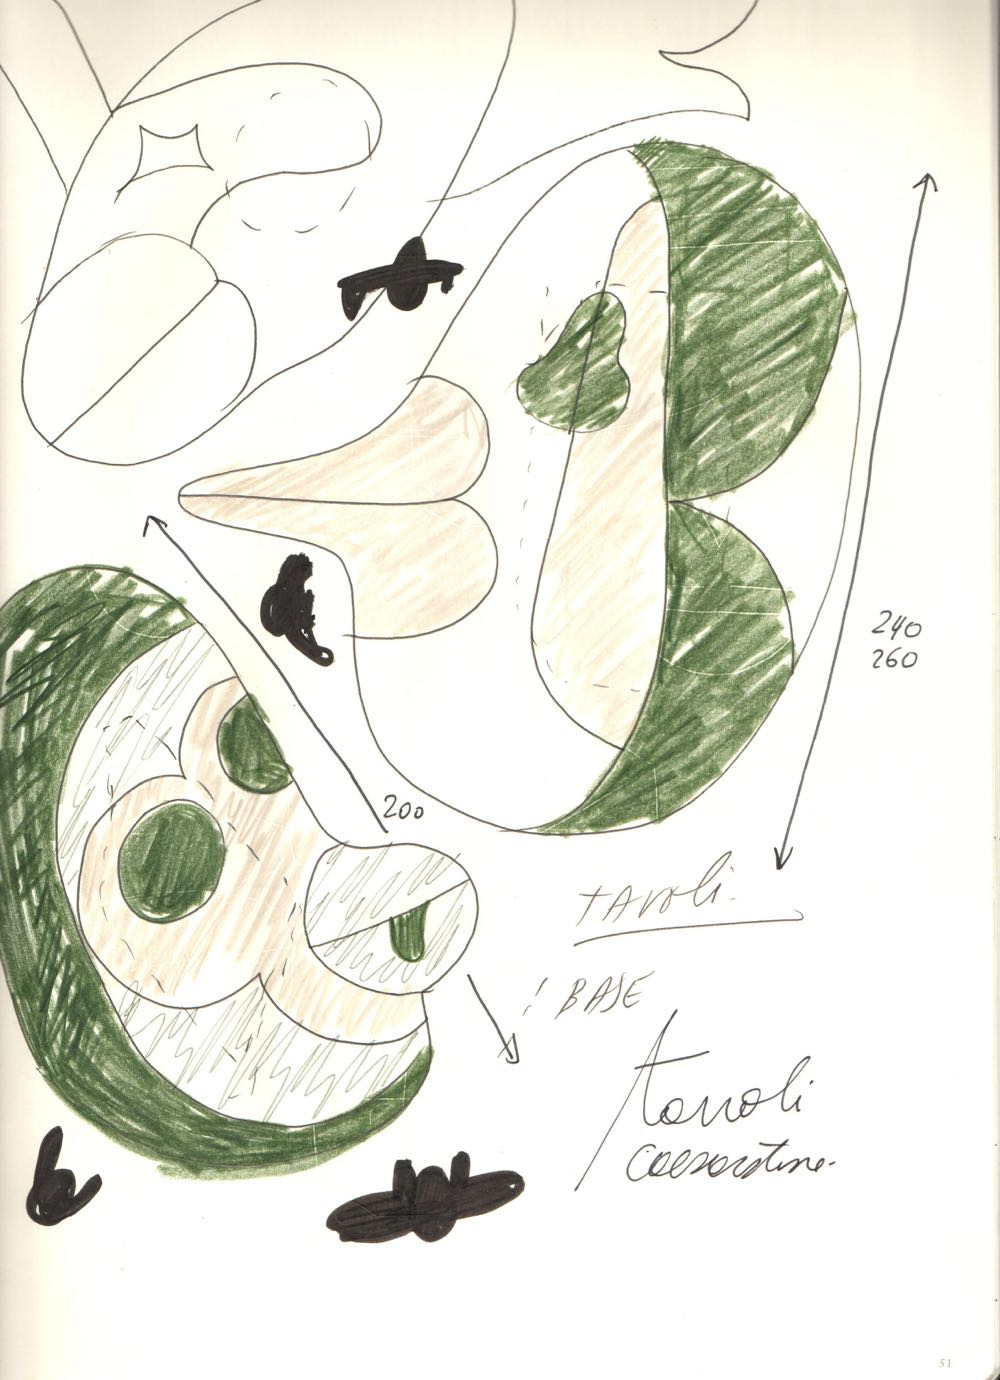 Another of Hayon's sketches for the Caesarstone project, showing the biomorphic shapes of some of the tables.